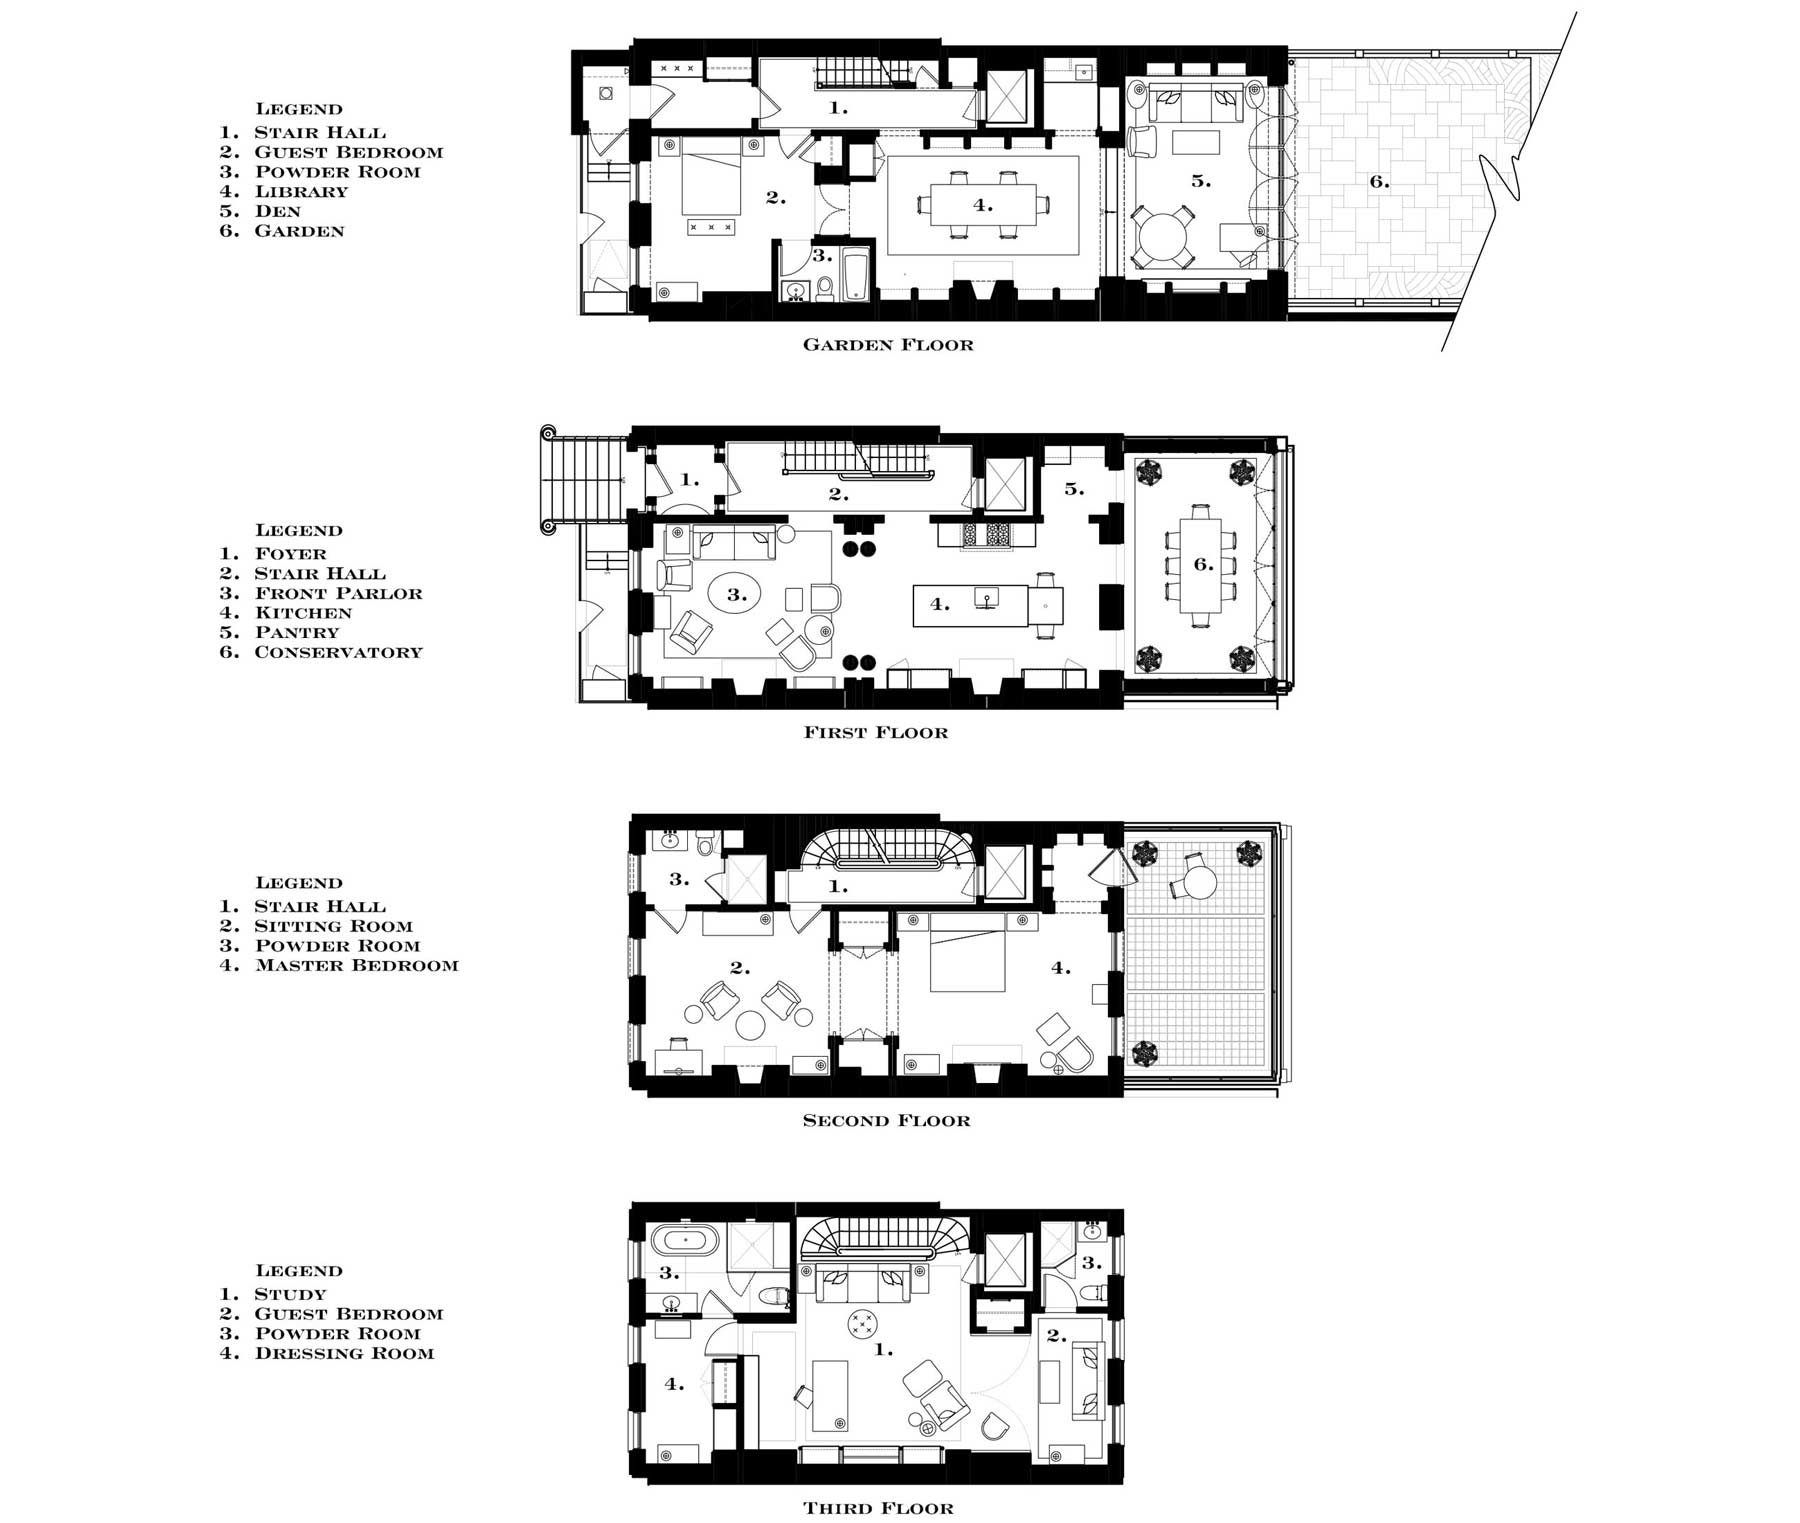 Historic Townhouse in New York | G.P. Schafer Architect on golf course floor plans, home floor plans, historic cottage floor plans, historic farmhouse floor plans, historic cape cod floor plans, historic house floor plans, historic bungalow floor plans,